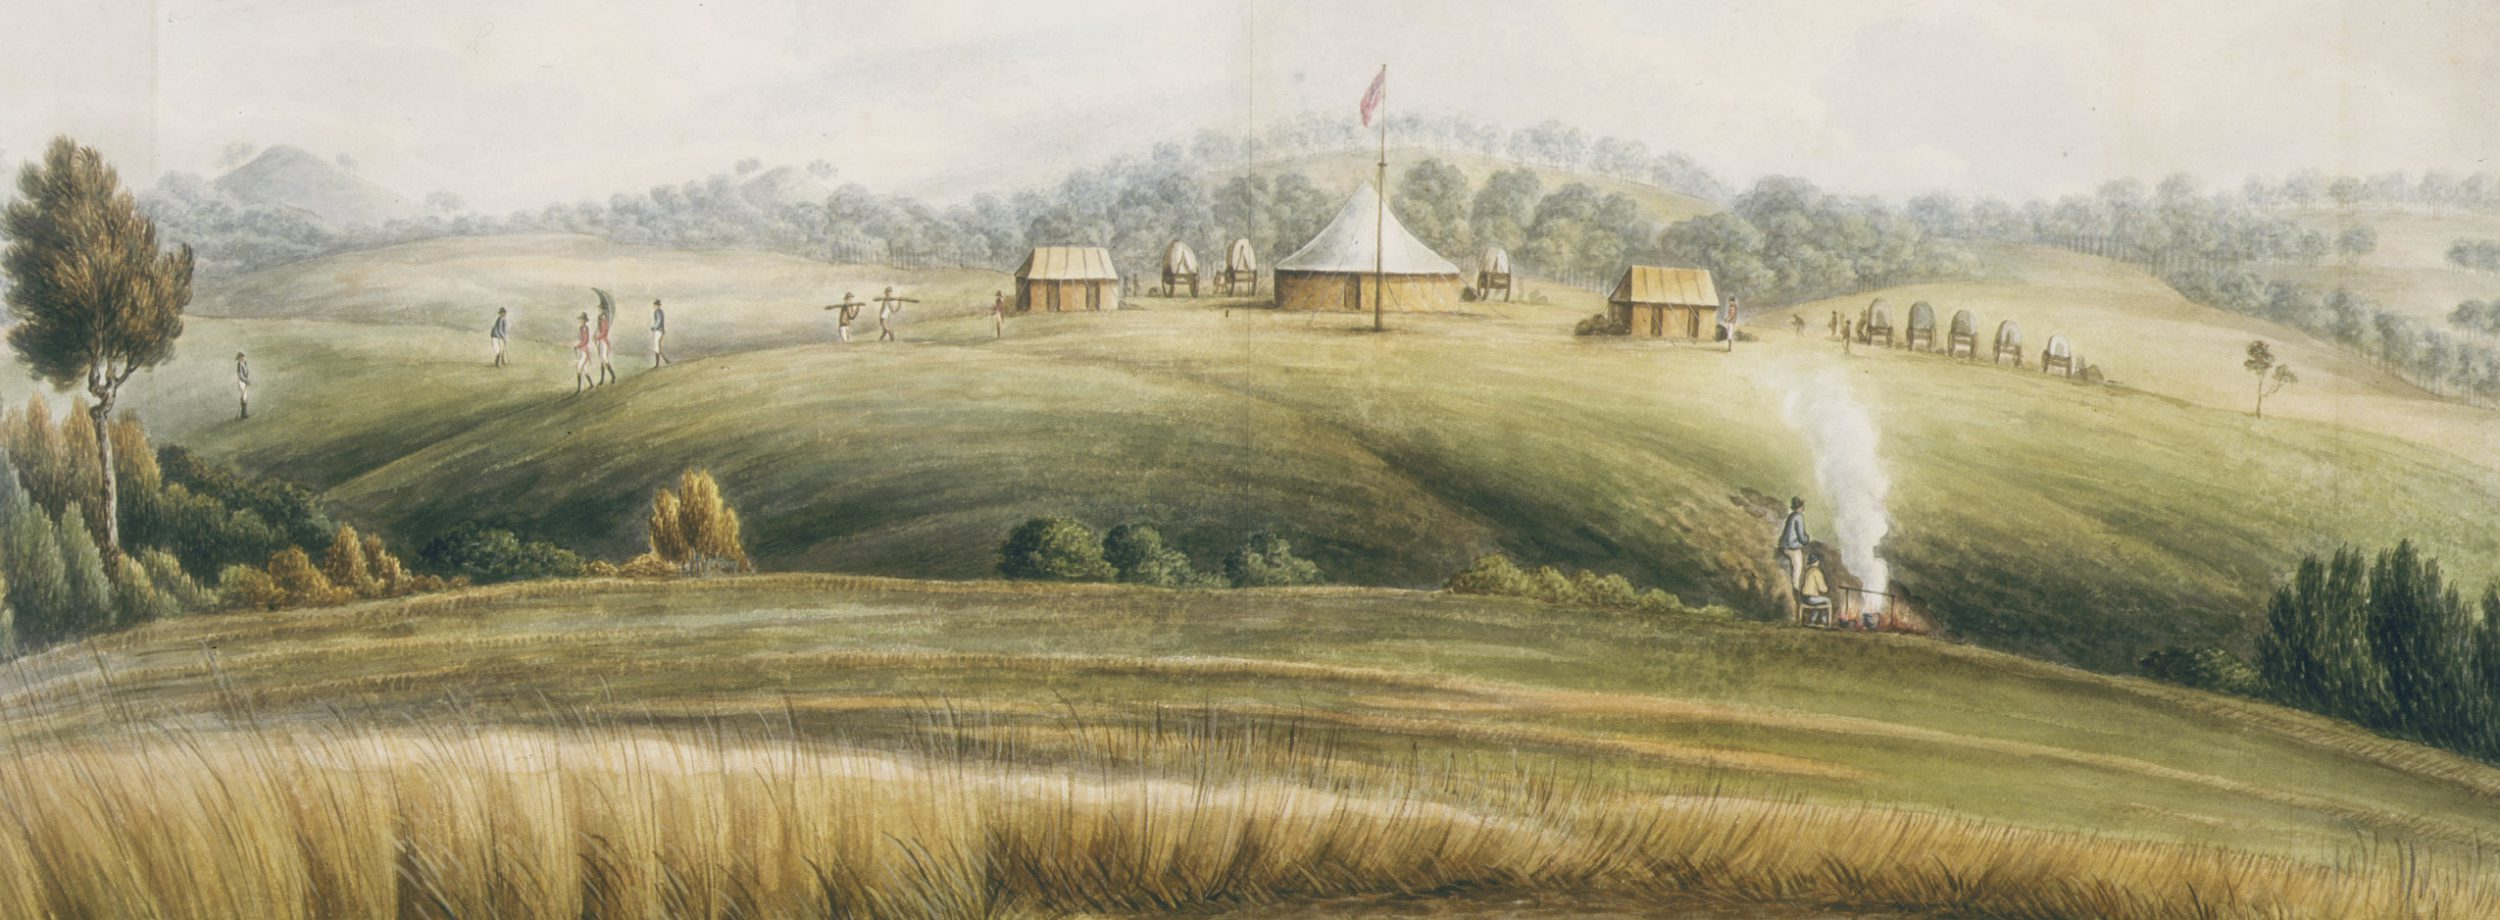 1815 Lewin painting